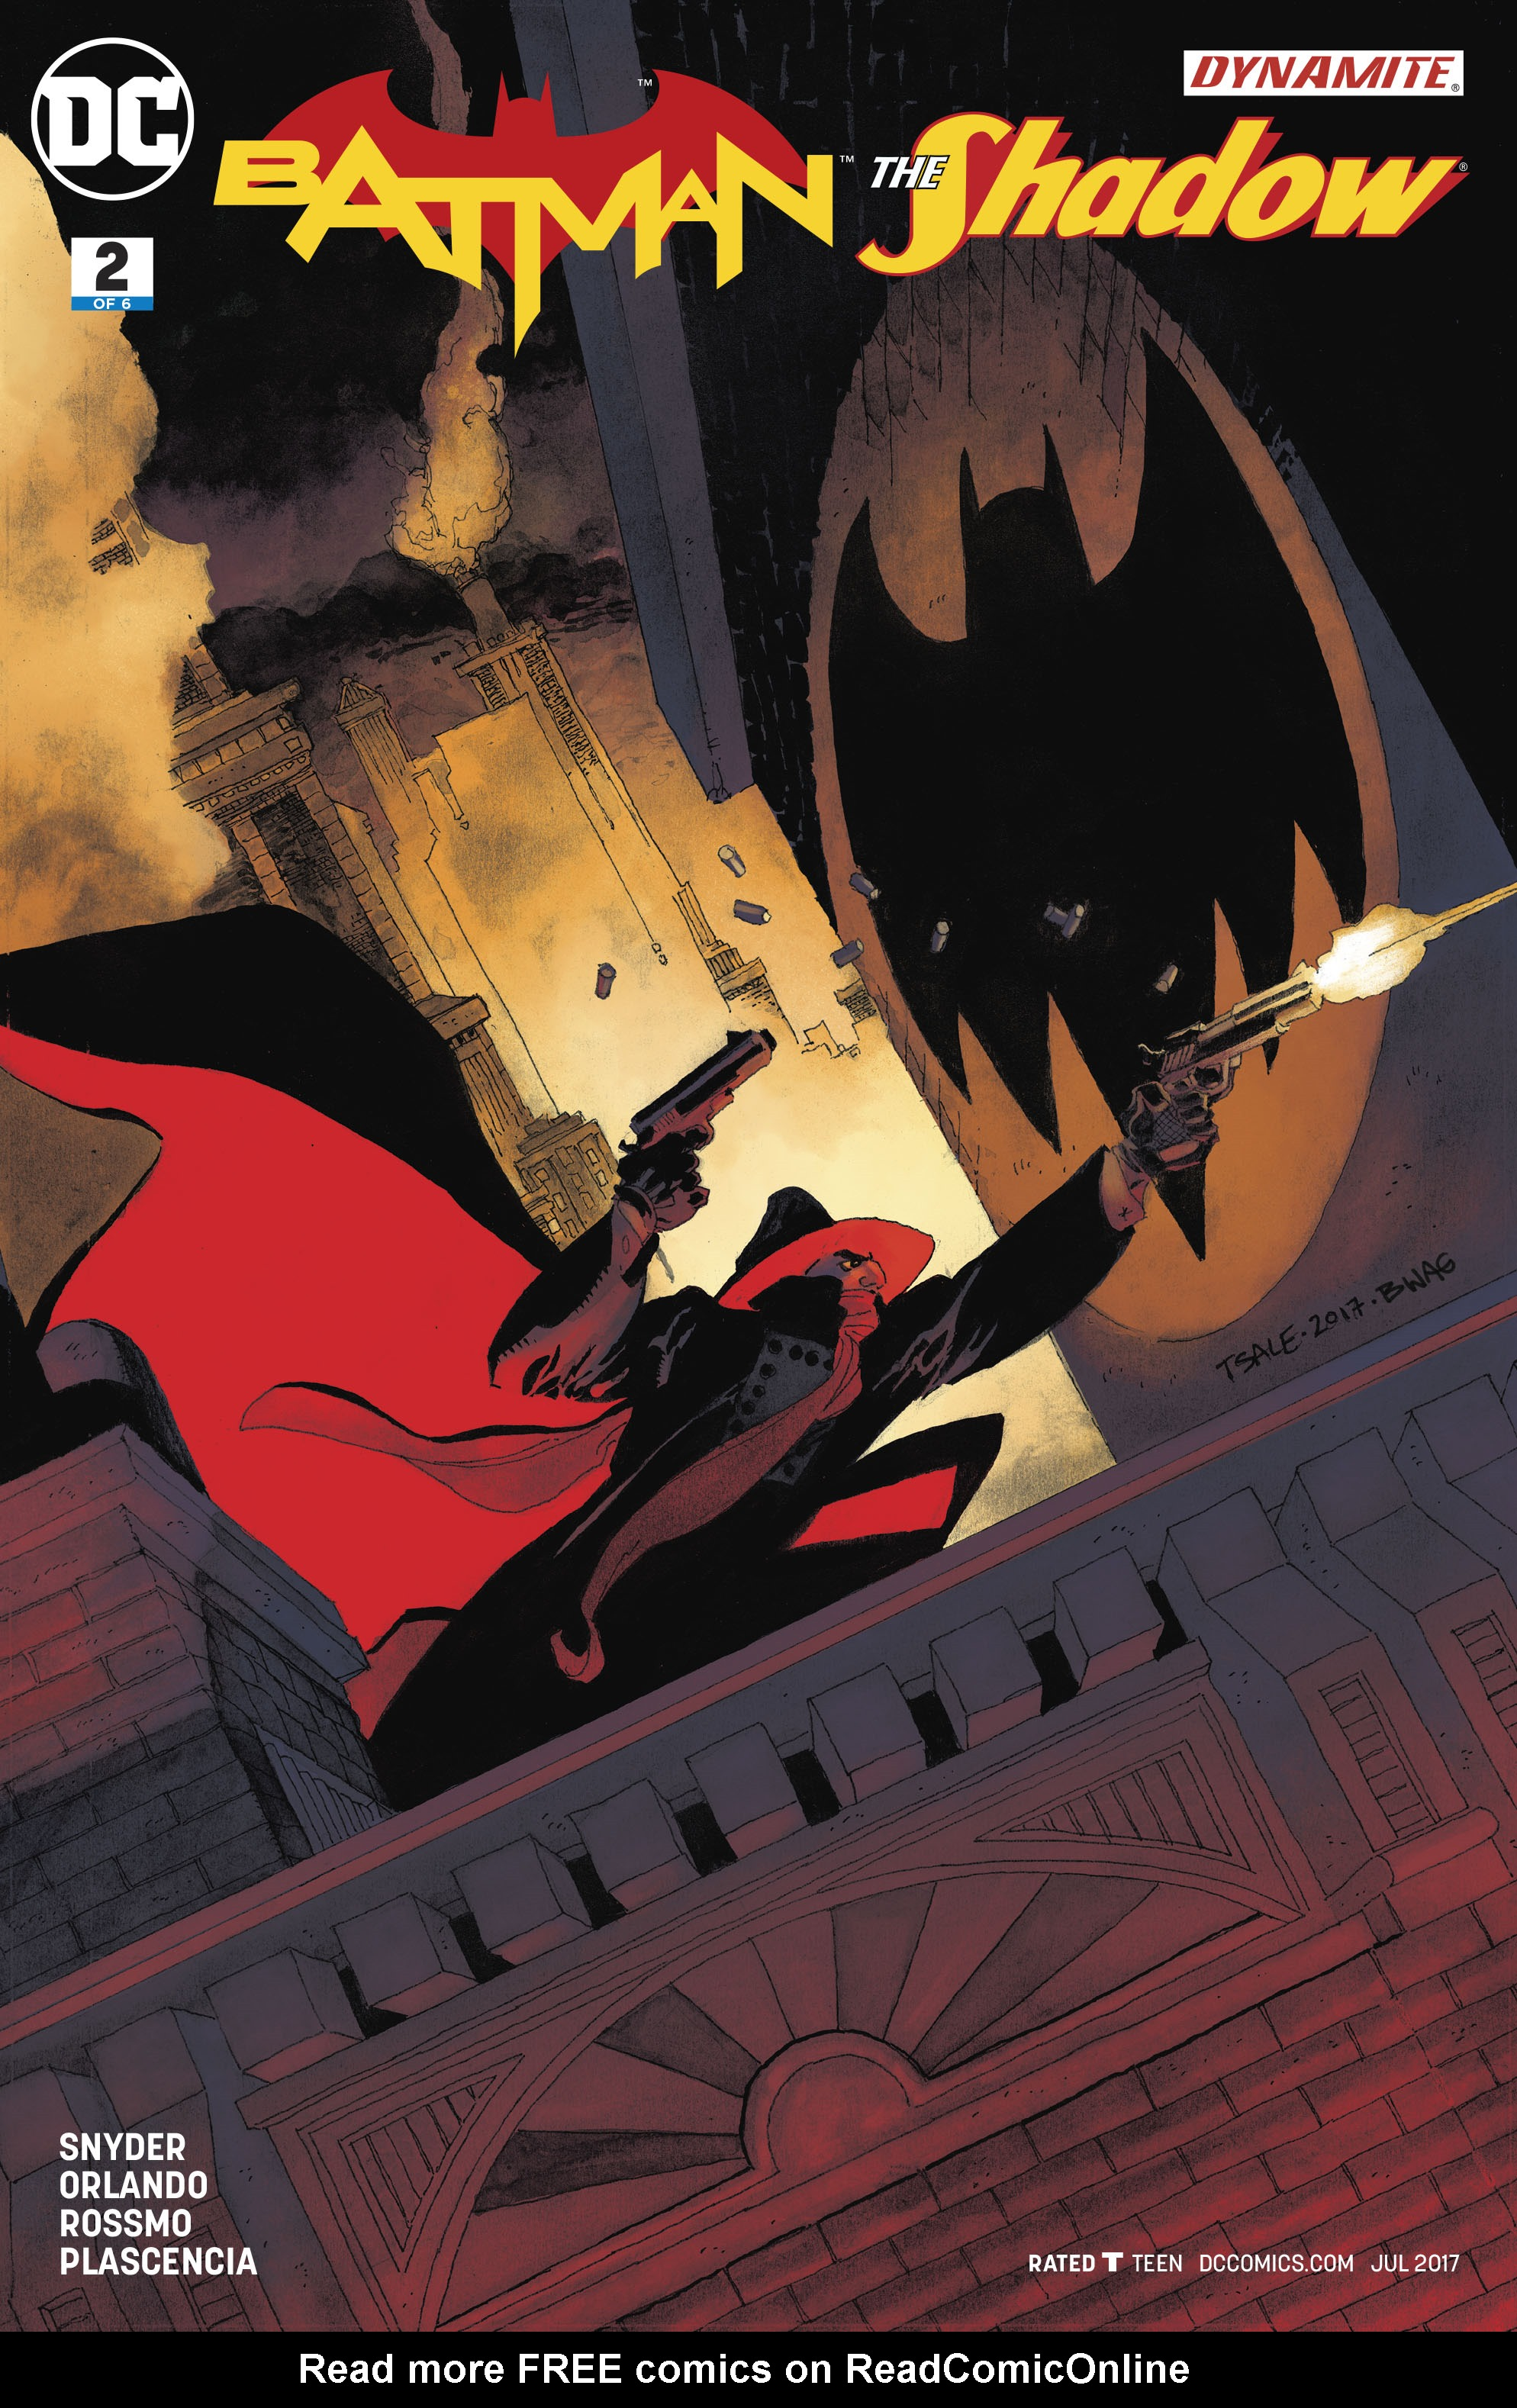 Read online Batman/Shadow comic -  Issue #2 - 4